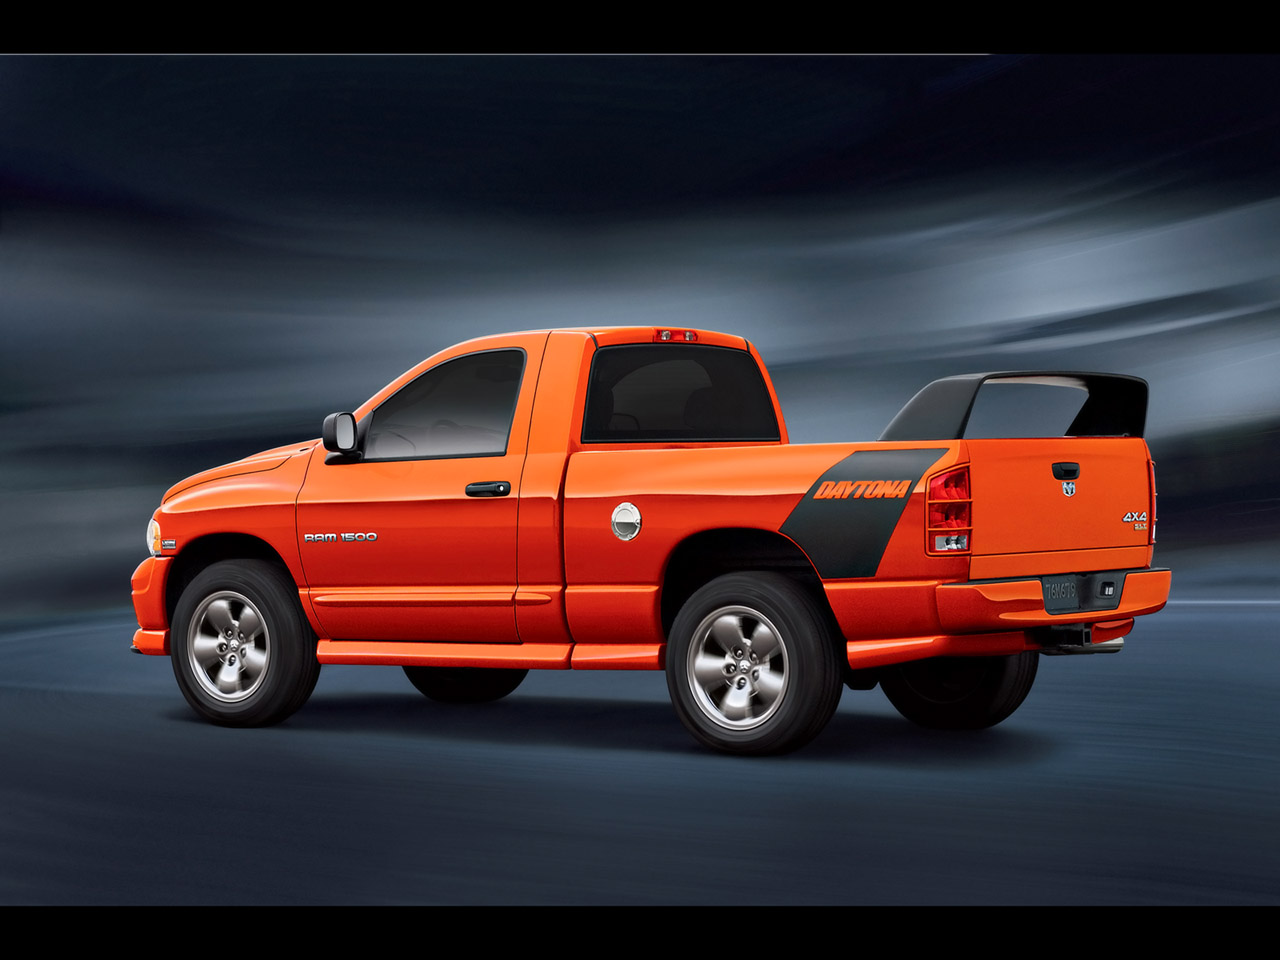 Dodge Ram Wallpaper 6538 Hd Wallpapers in Cars   Imagescicom 1280x960